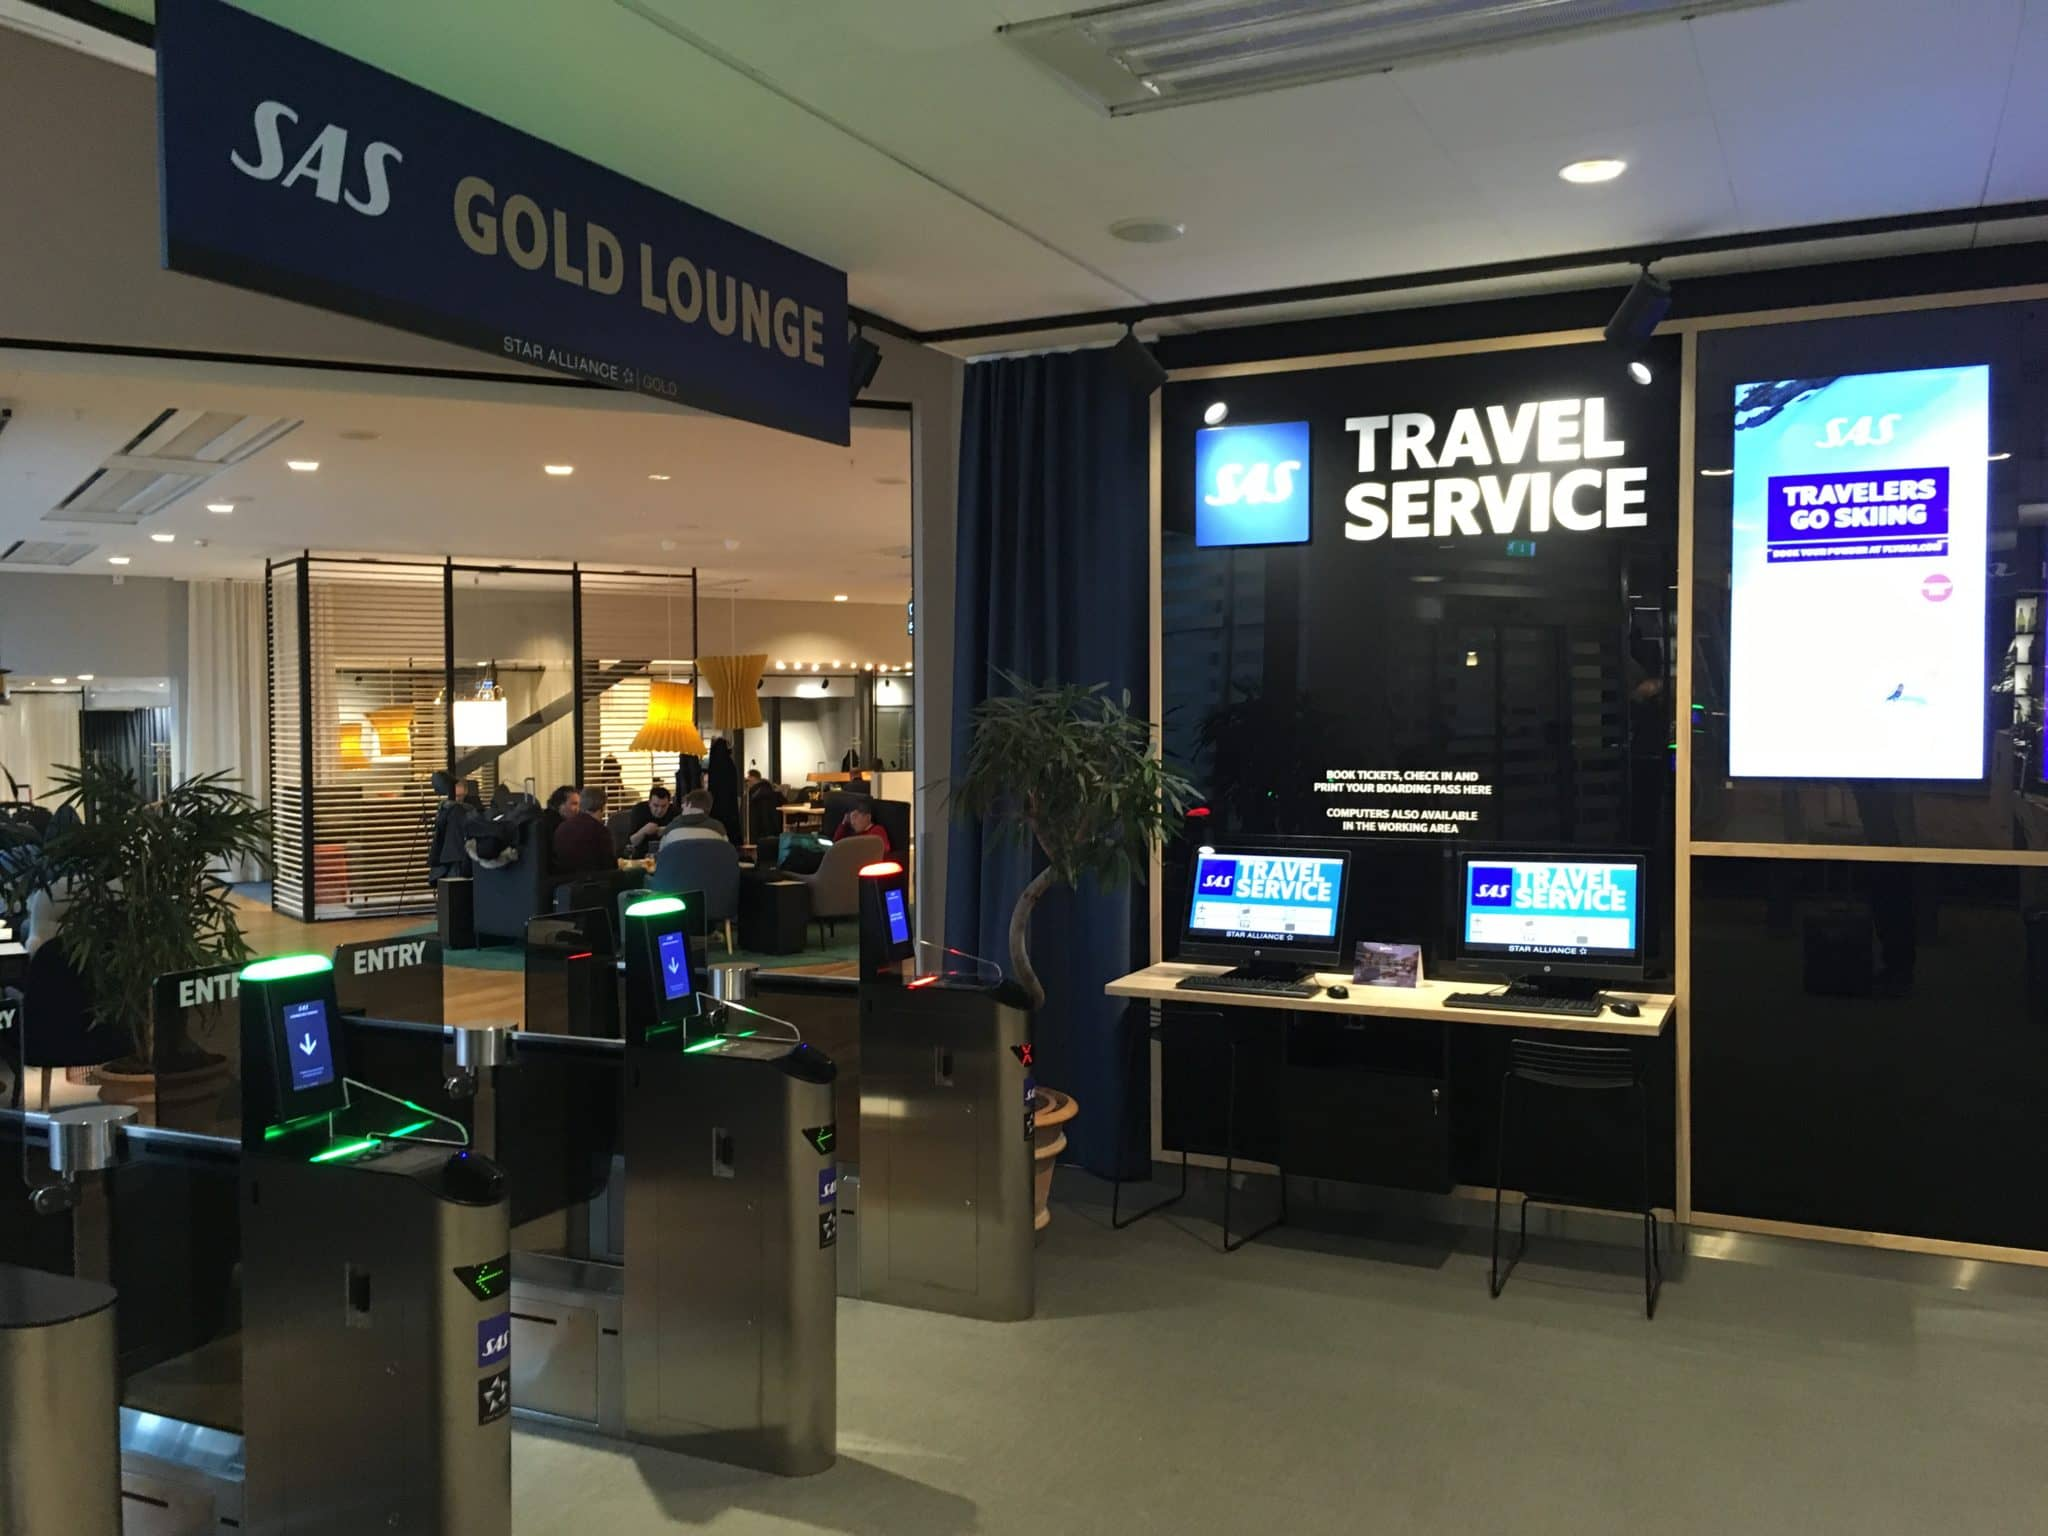 SAS Gold Lounge Stockholm Travel Service